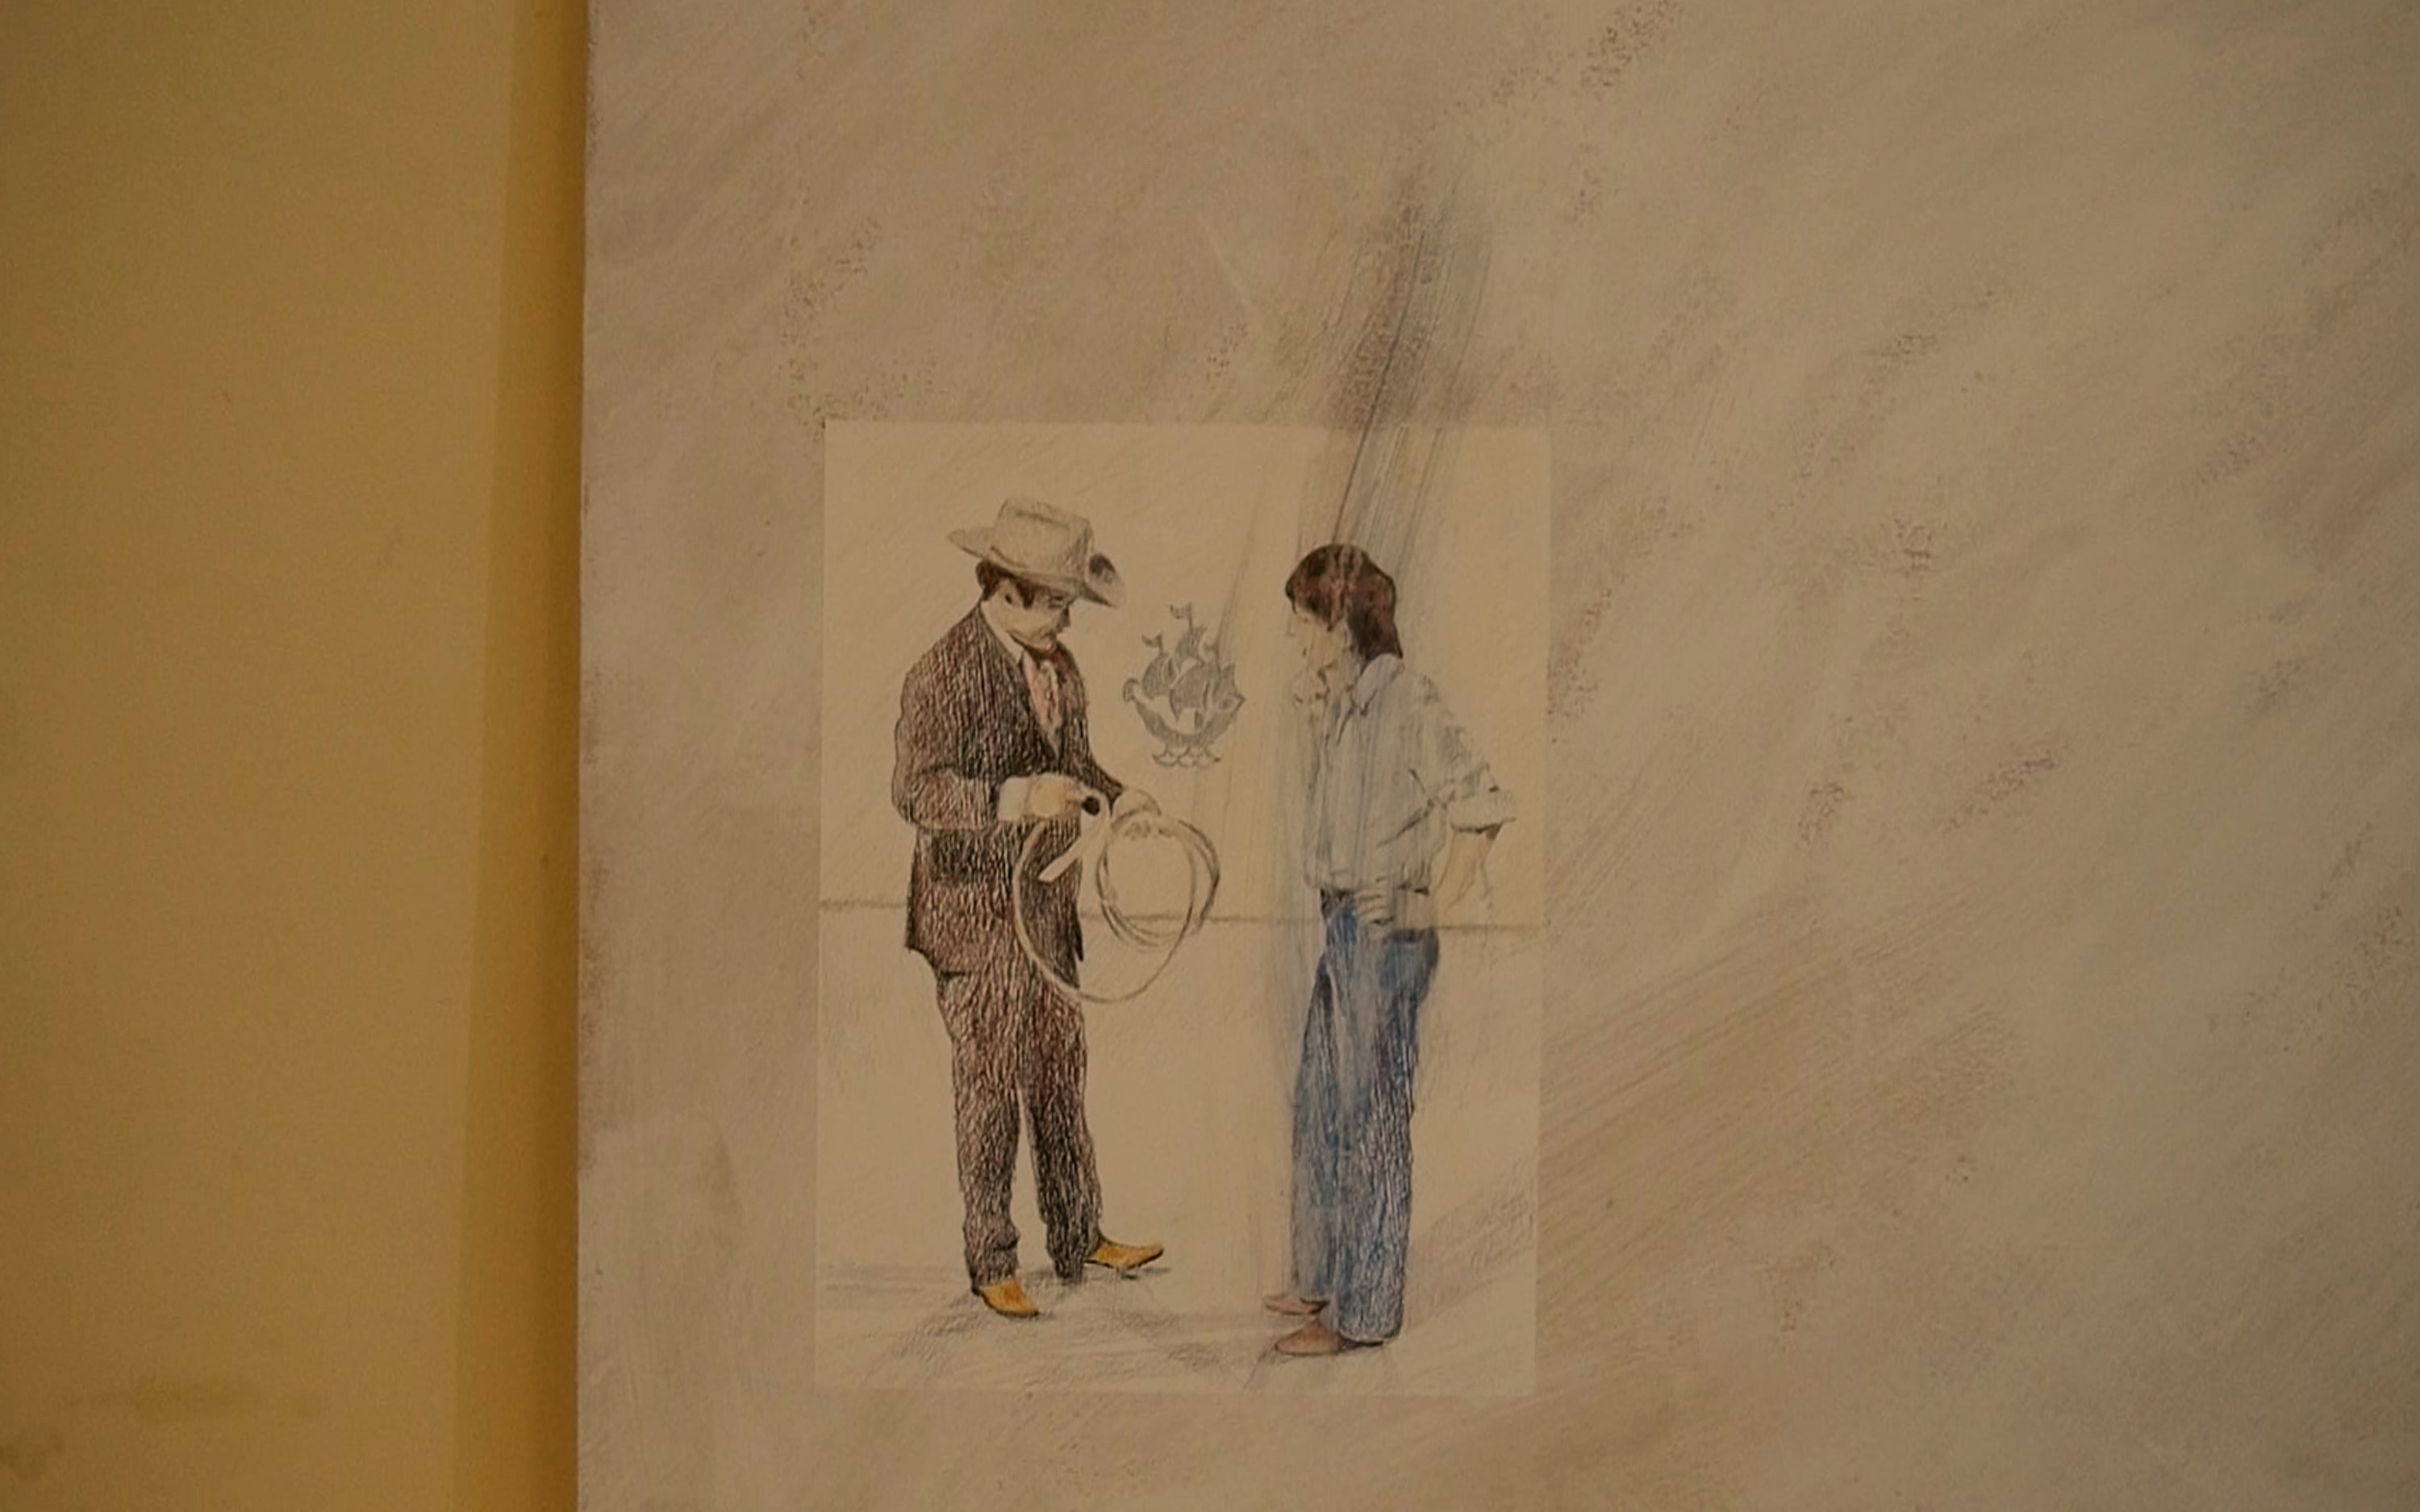 A cowboy is drawn facing another man. The cowboy is holding a rope. The blue Peter logo is in the background.